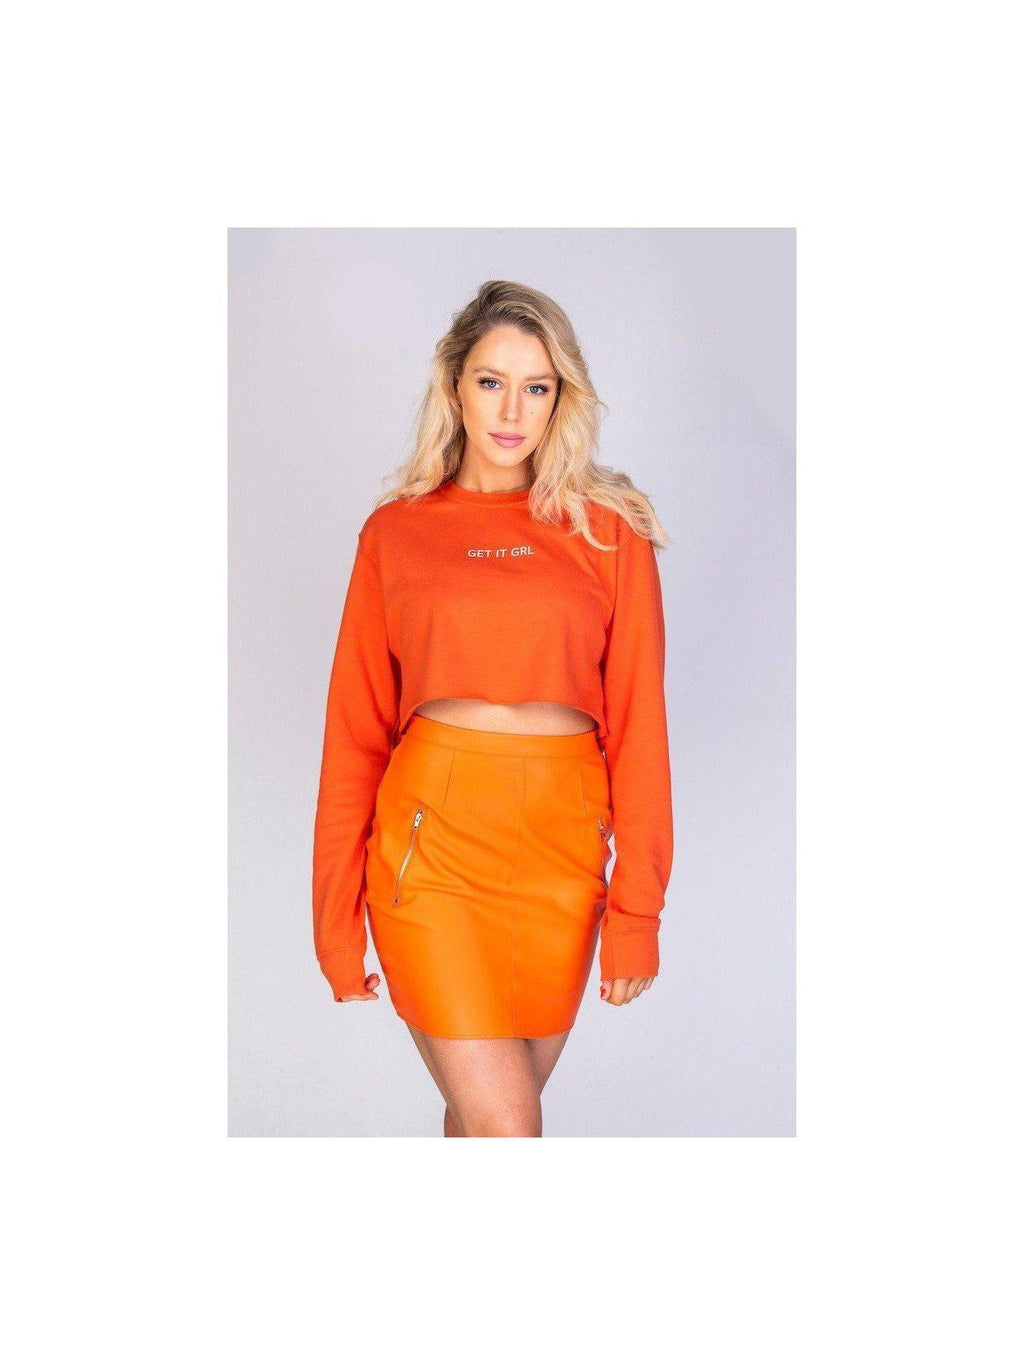 ZARA leatherette skirt in orange